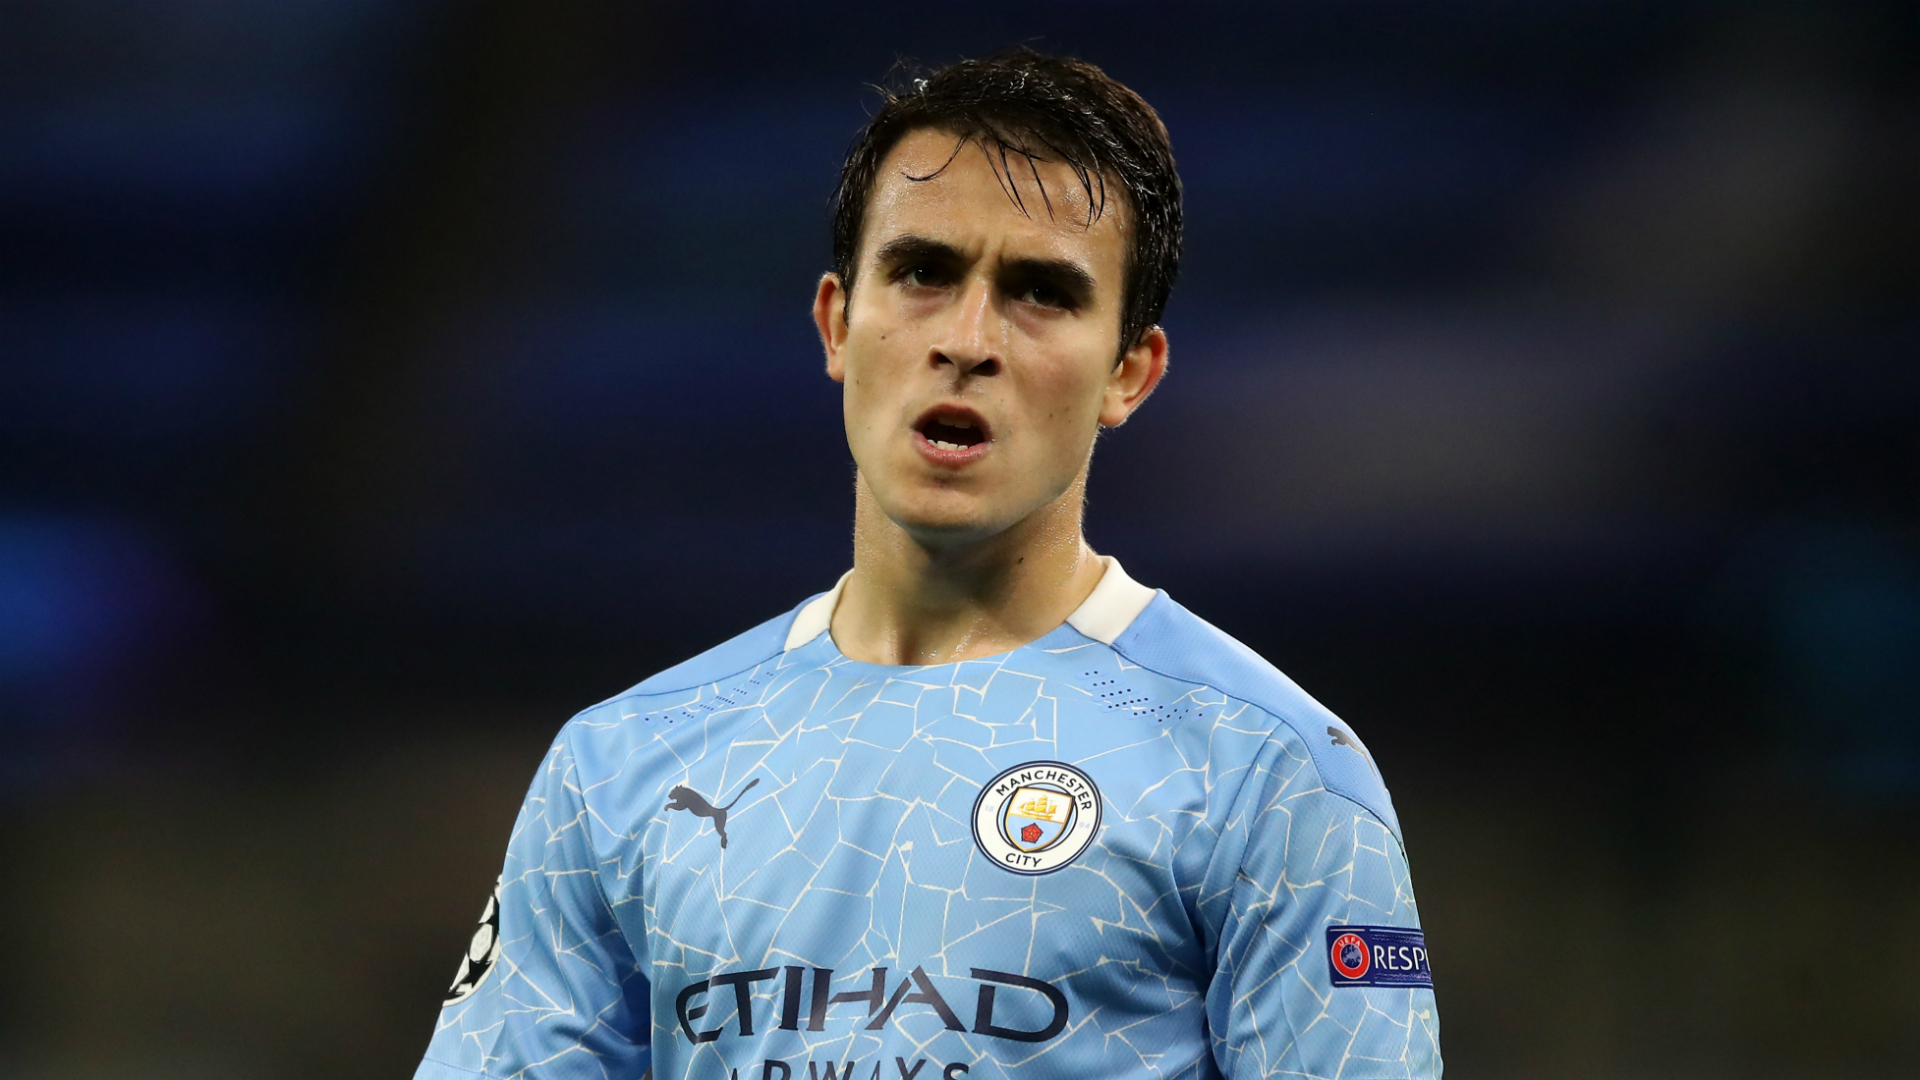 Man City confirm Garcia and staff member tested positive for coronavirus